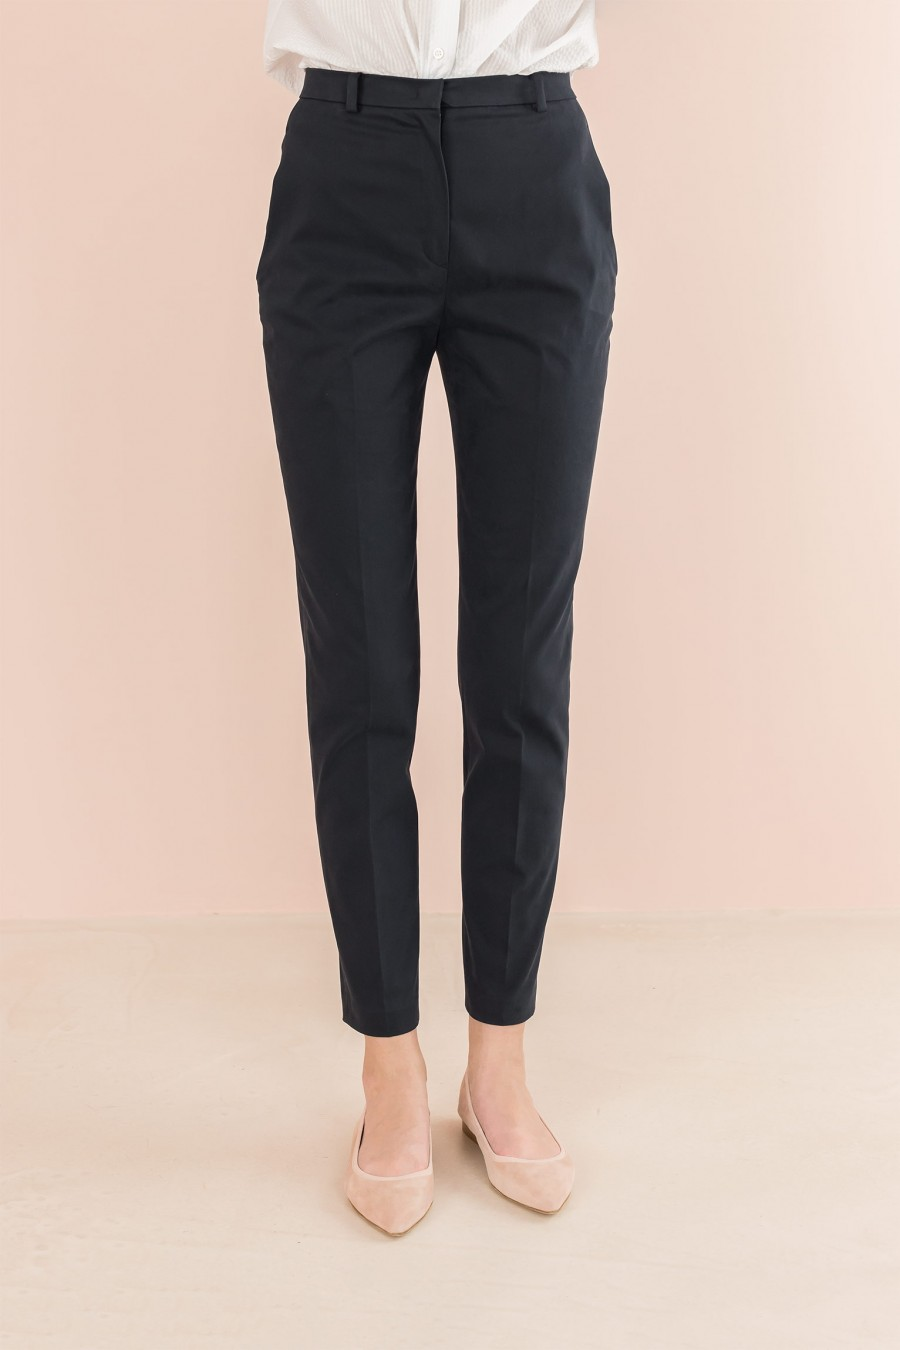 velvety-cotton blue trousers